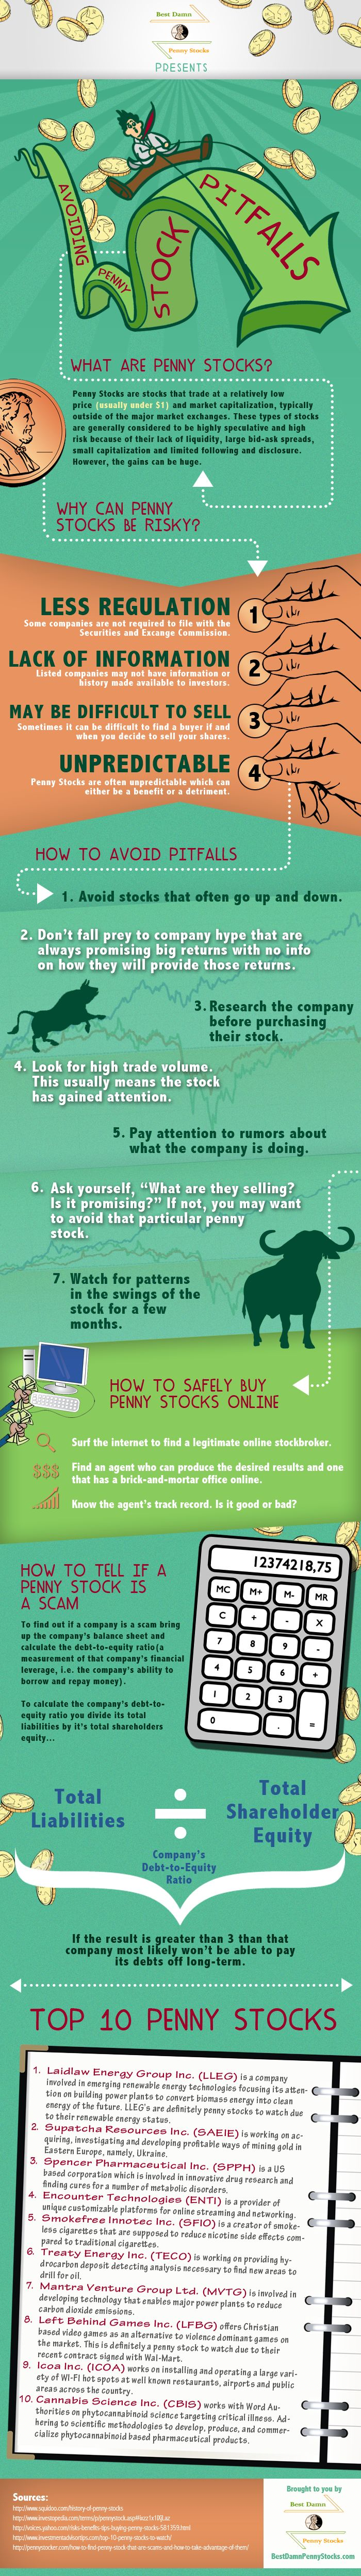 "Investing Infographics - Thinking about investing in penny stocks?  Actually ""investing"" and ""penny stocks"" shouldn't really be used in the same sentence.  Either way, if you decide to trade them, make sure you avoid the common pitfalls."